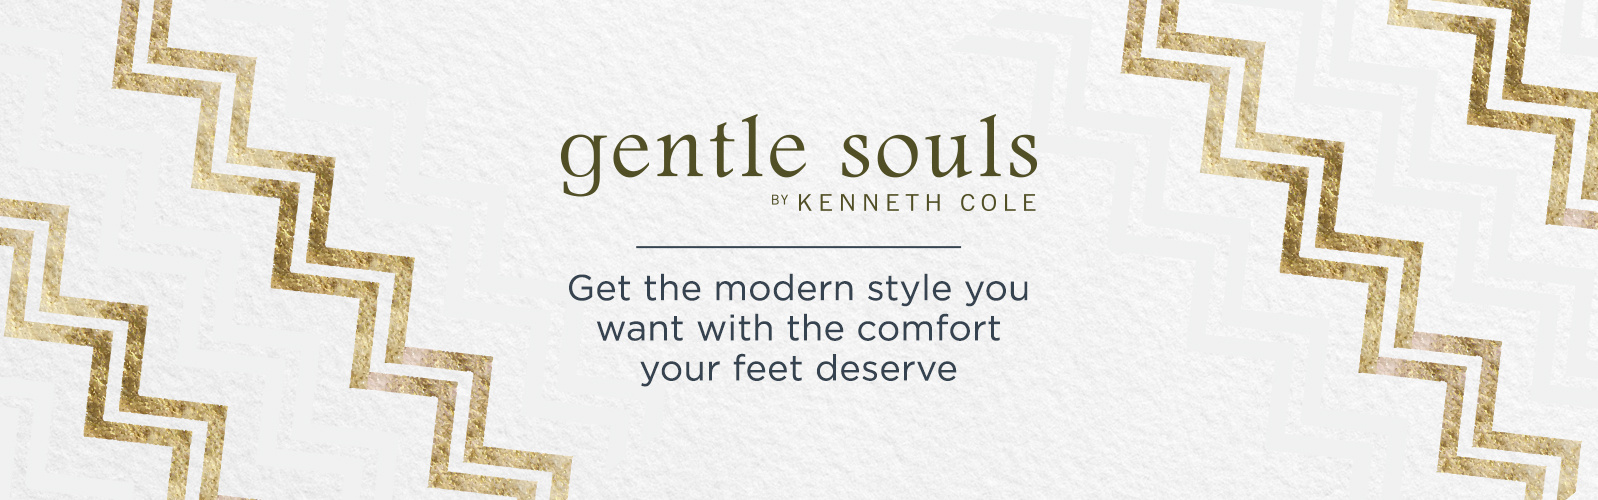 Gentle Souls by Kenneth Cole. Get the modern style you want with the comfort your feet deserve.